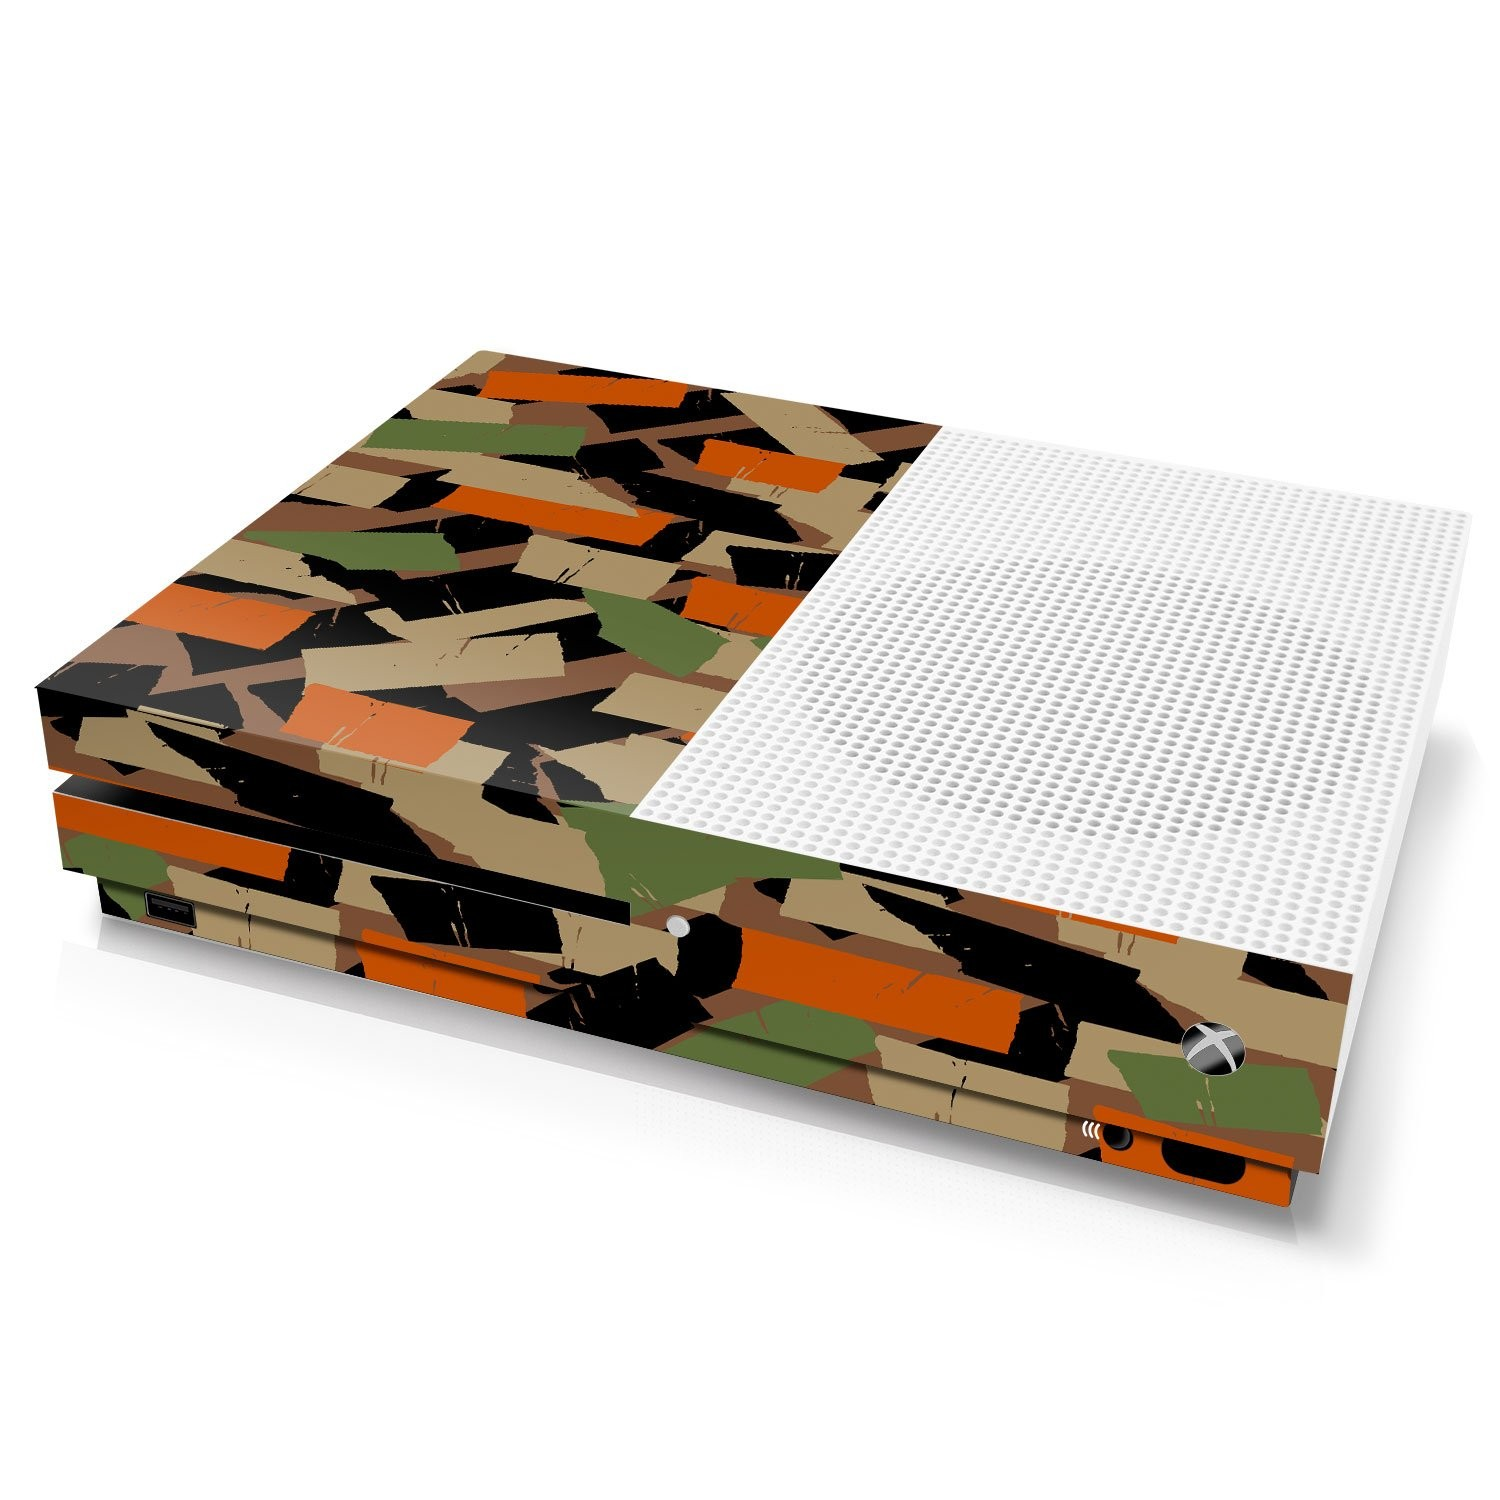 Xbox One S Console Skin - Camouflage: Flecktarn Torn Tape - Officially Licensed by Xbox